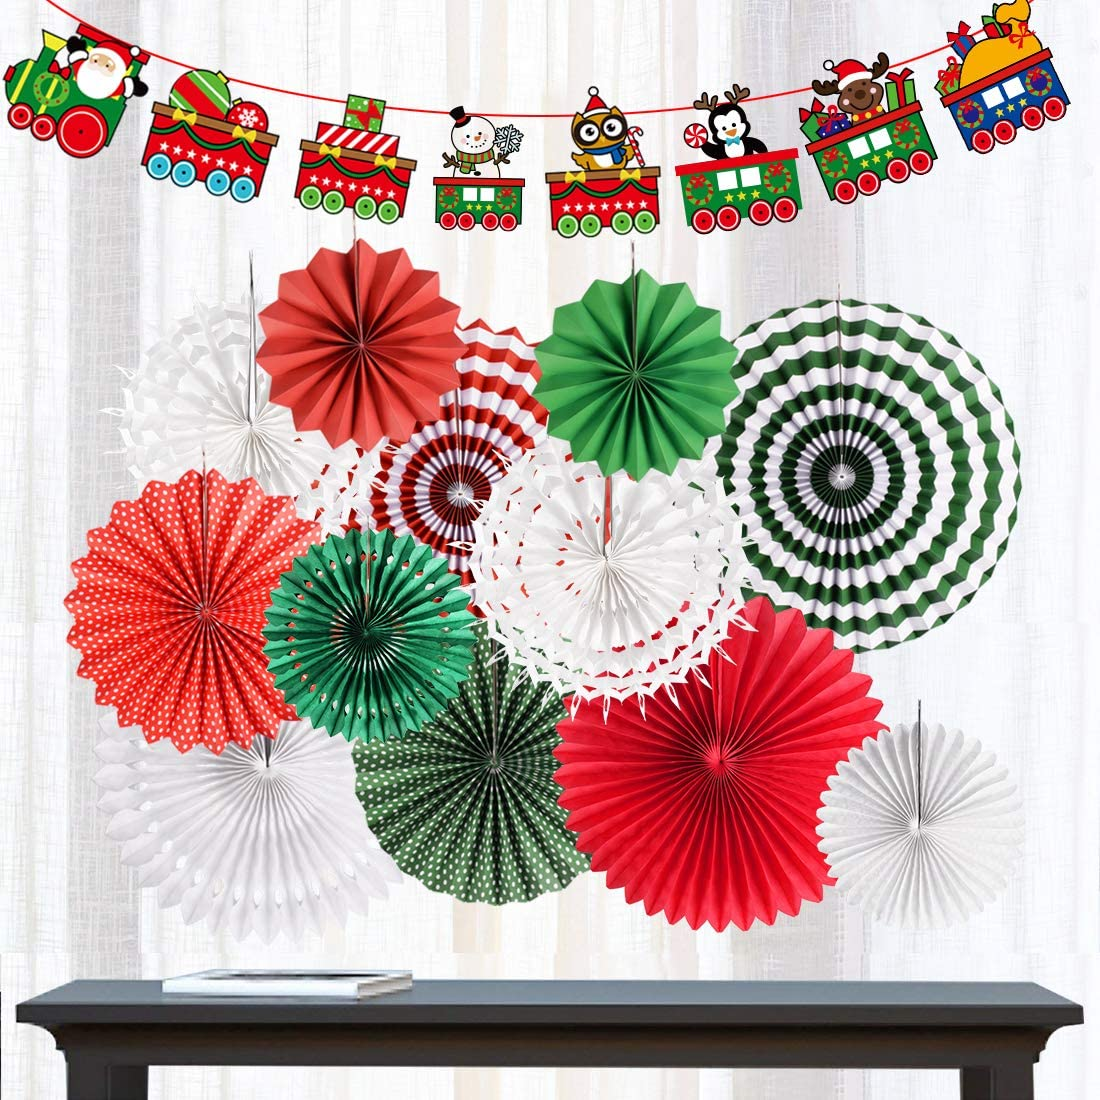 Konsait 30pcs Christmas New Year Hanging Decoration Paper Honeycomb Balls Paper Fans Kit for Xmas Party Decor Supplies Baby Shower Birthday Wedding Home Decoration Red White Green Decor